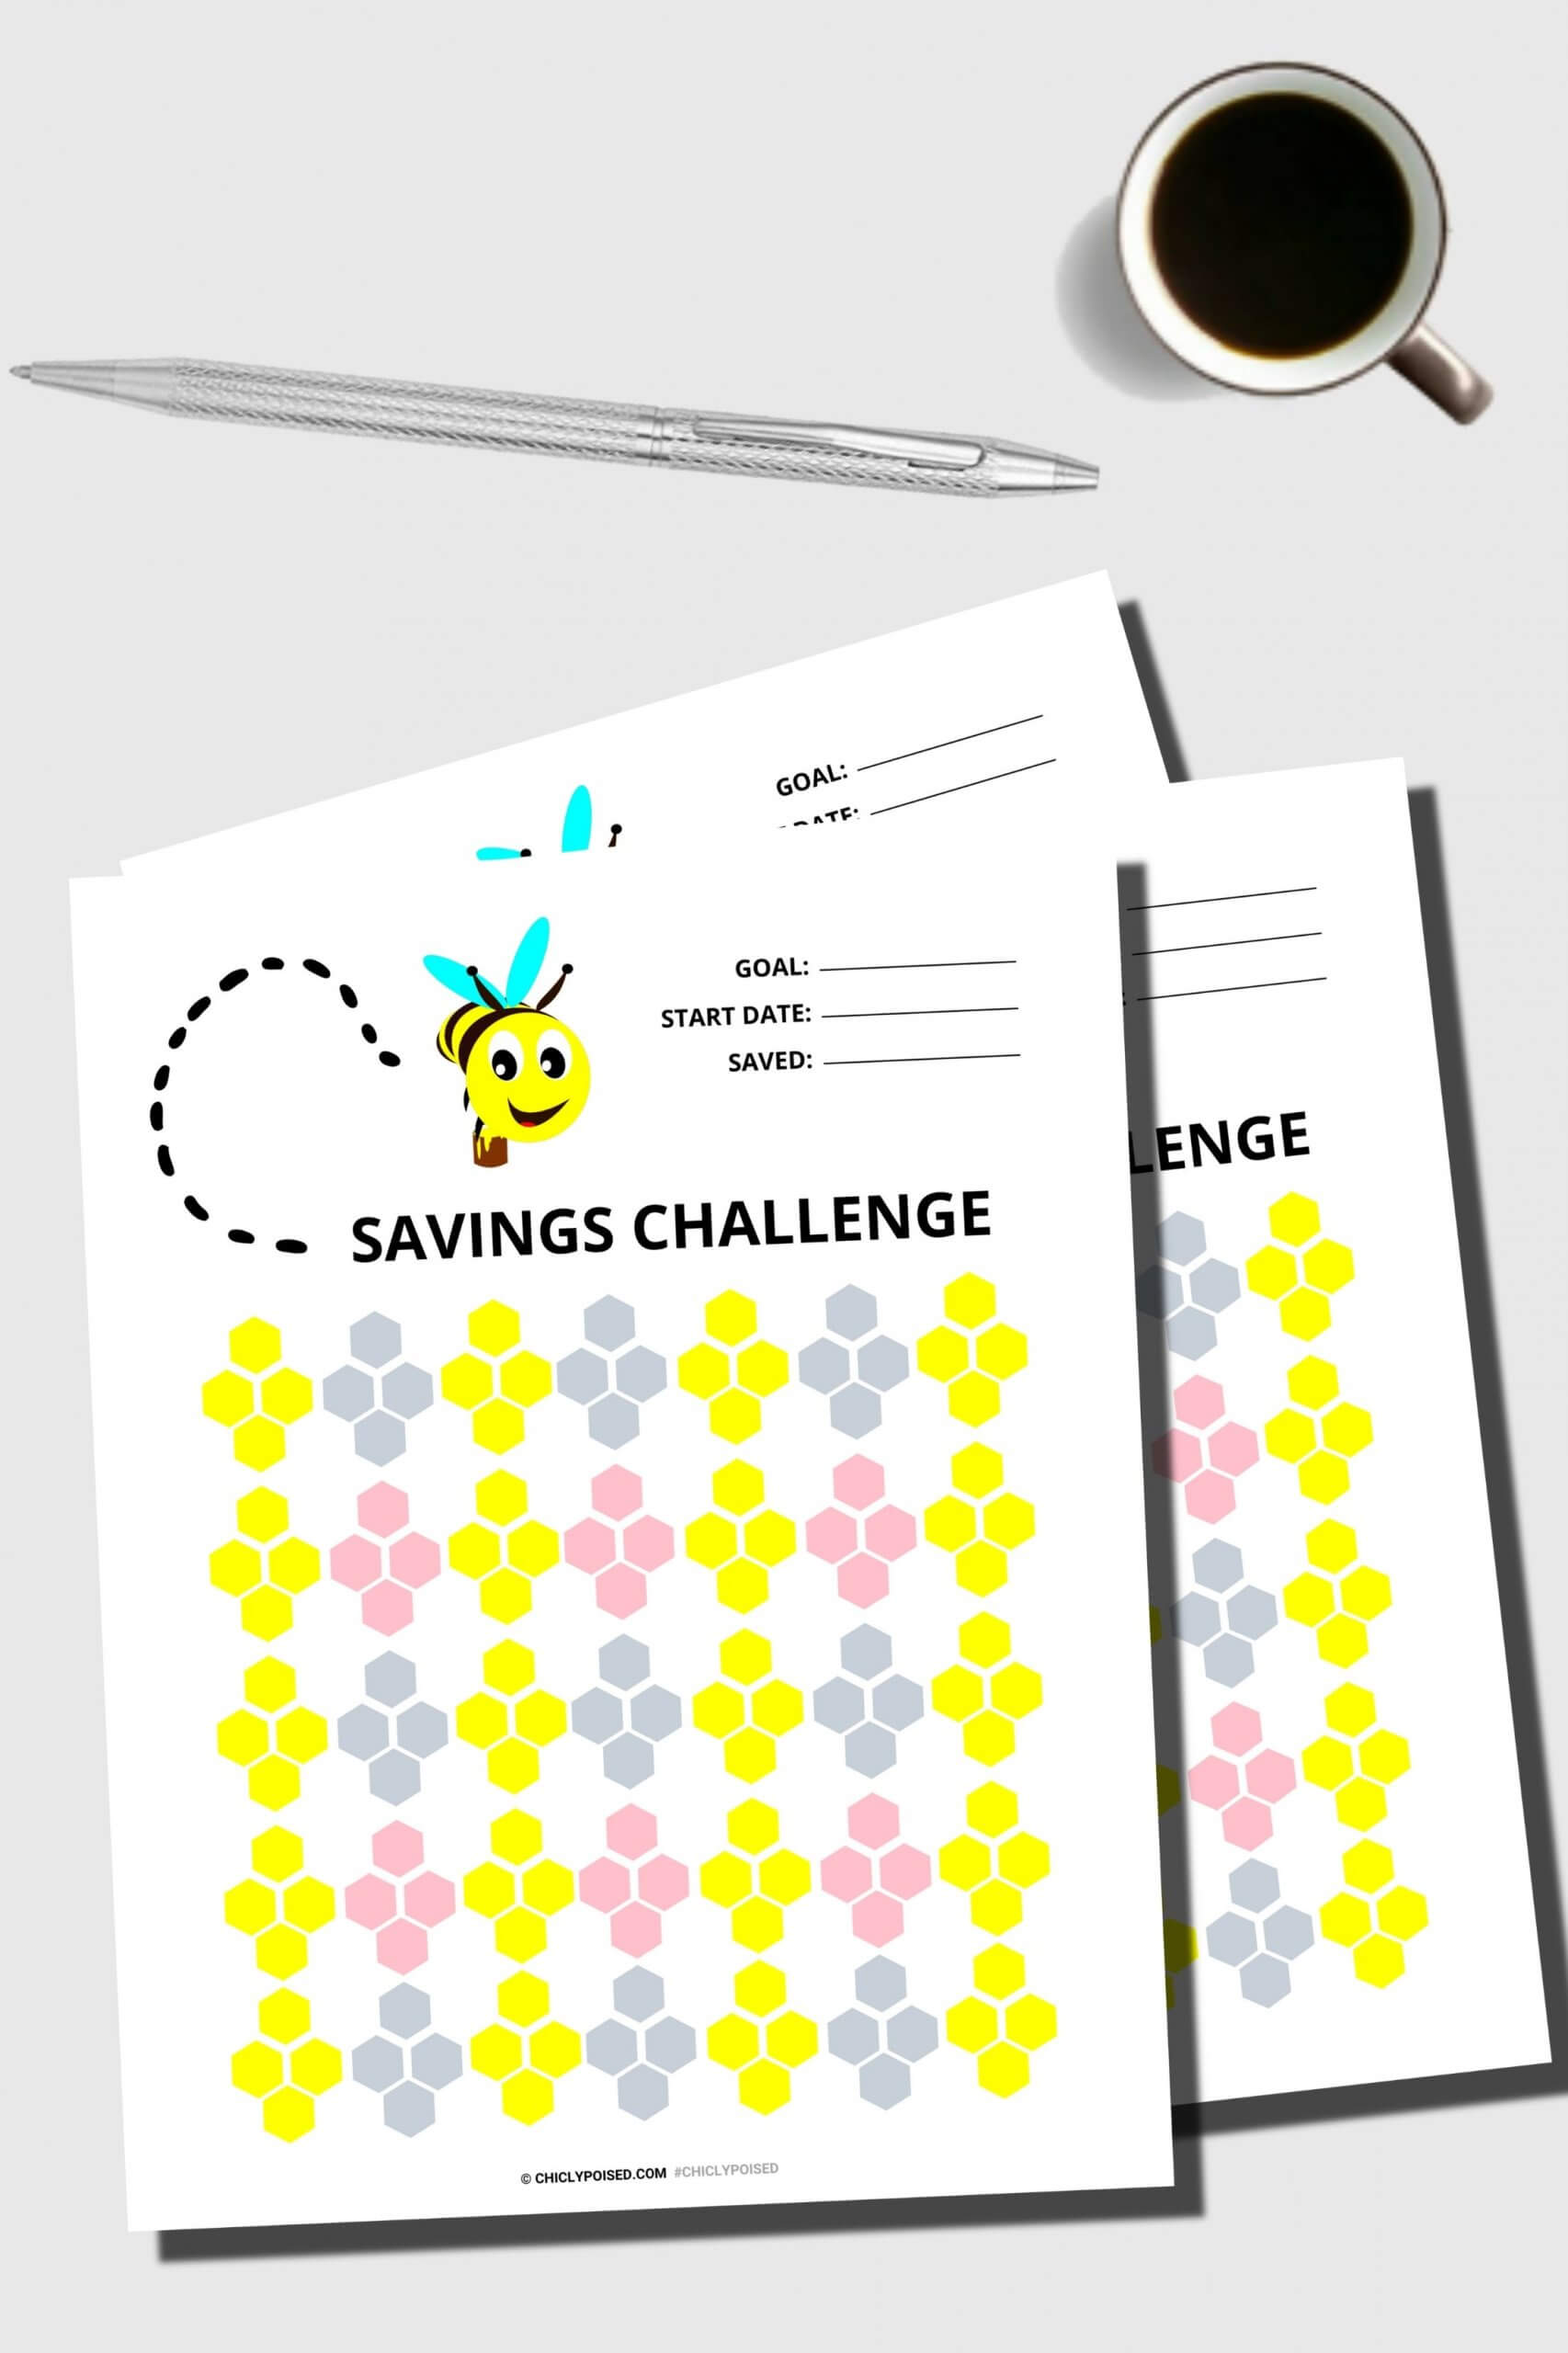 Savings Challenge Printables 1 of 5